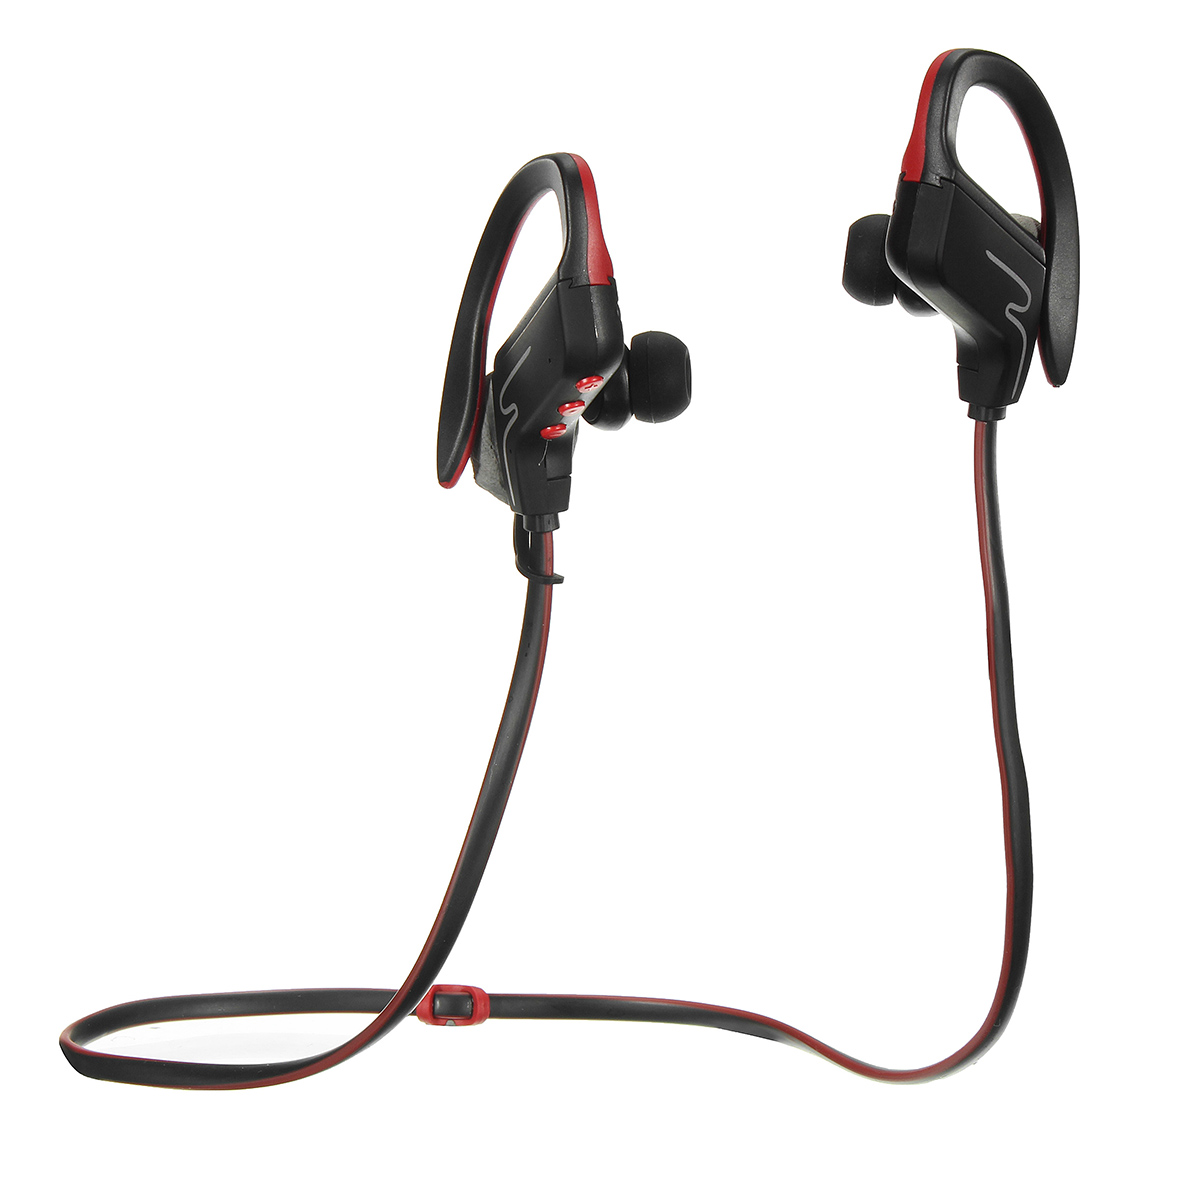 Phrodi sp-6 Sport Waterproof Noise Canceling Wireless Bluetooth V4.1 Headphone Earphone With Mic - banggood.com - imall.com